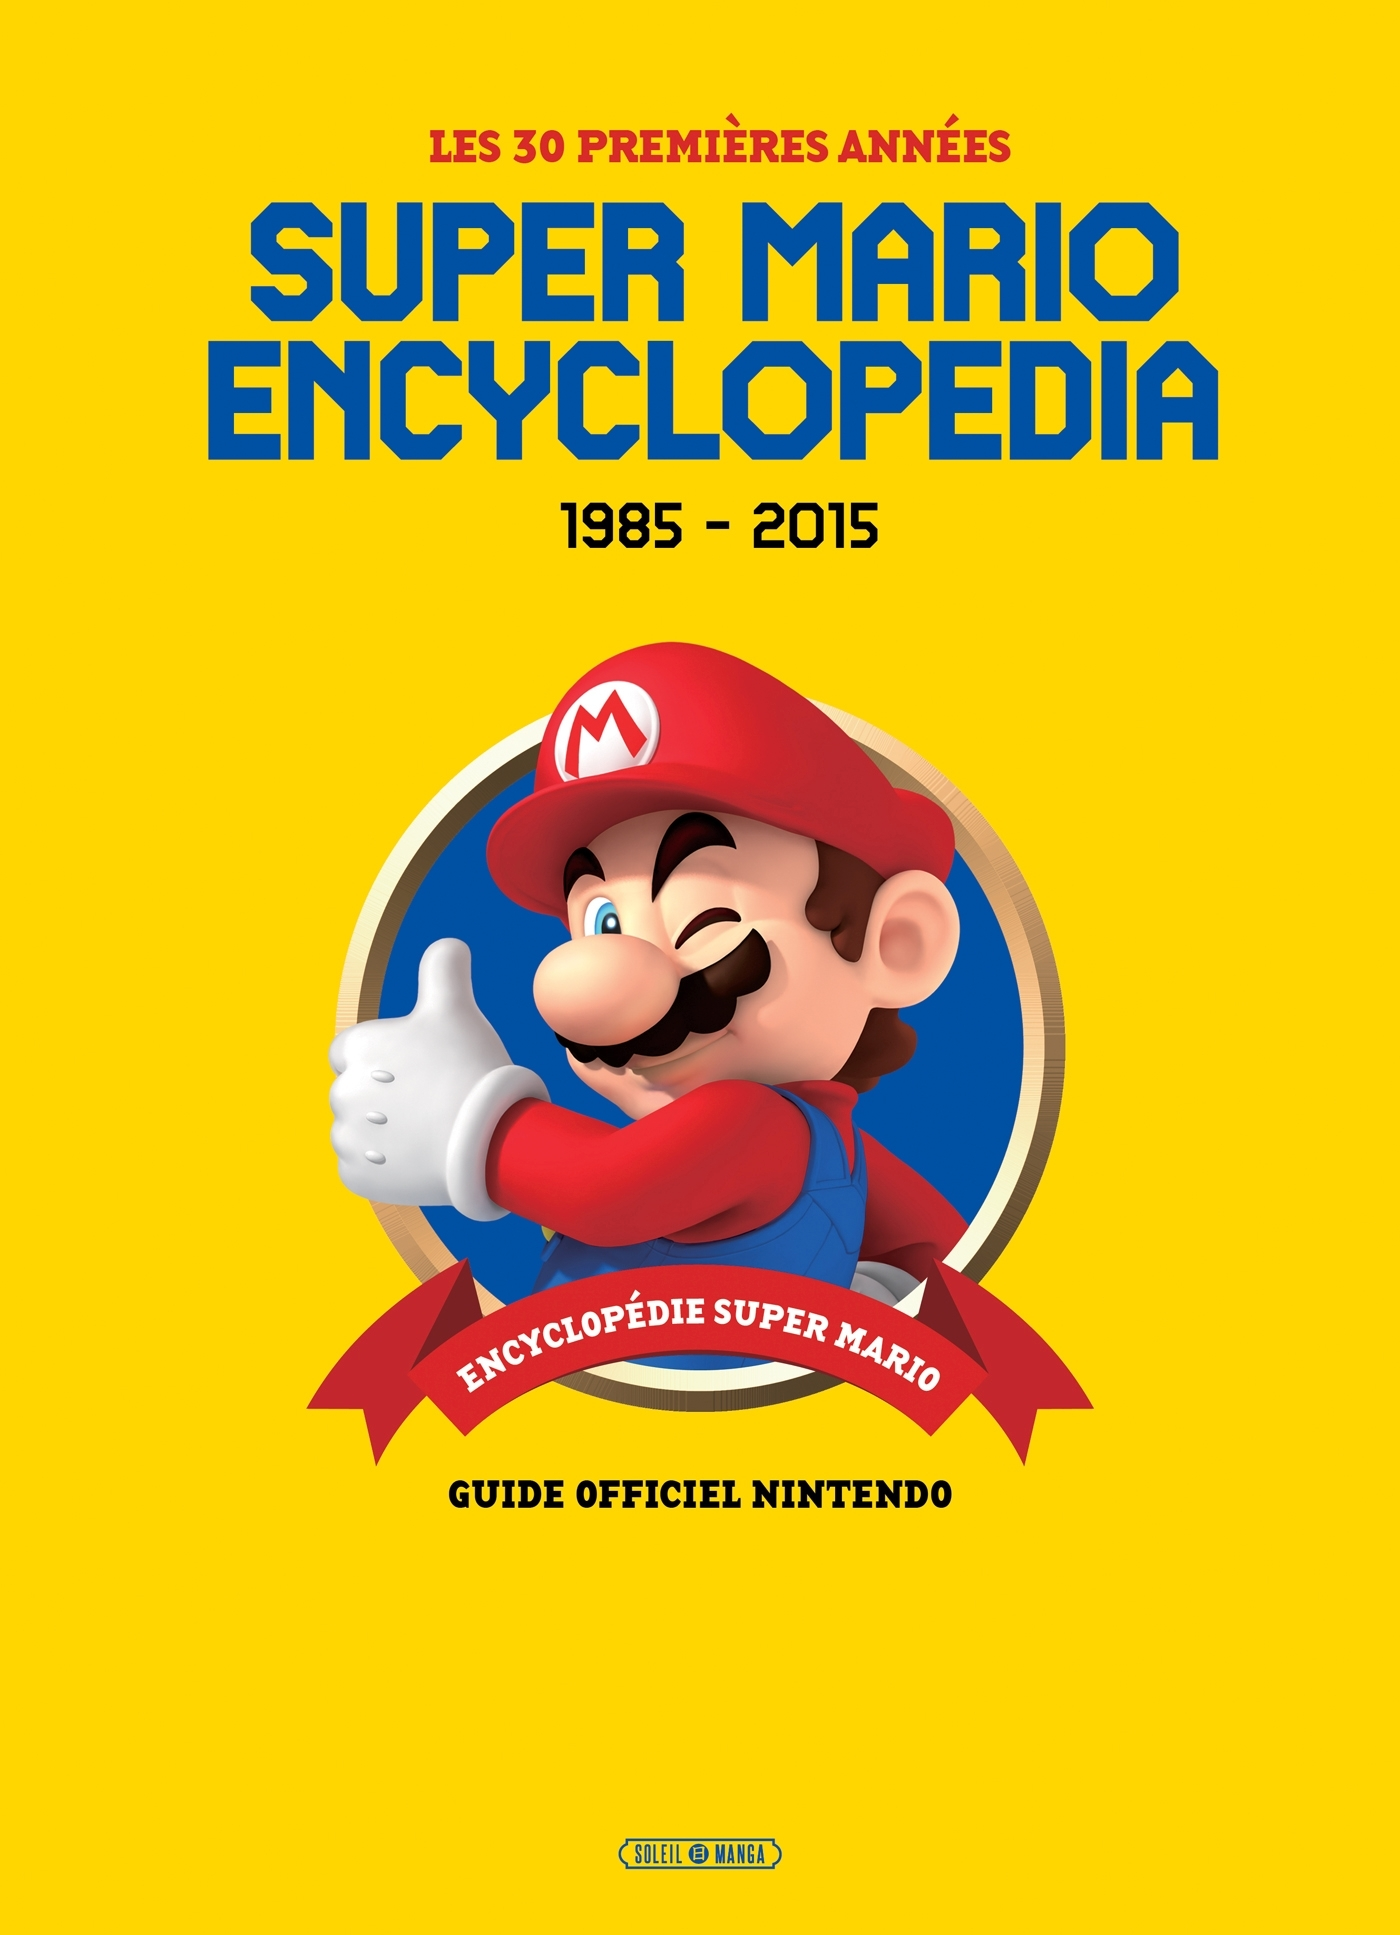 SUPER MARIO ENCYCLOPEDIA SUPER MARIO BROS